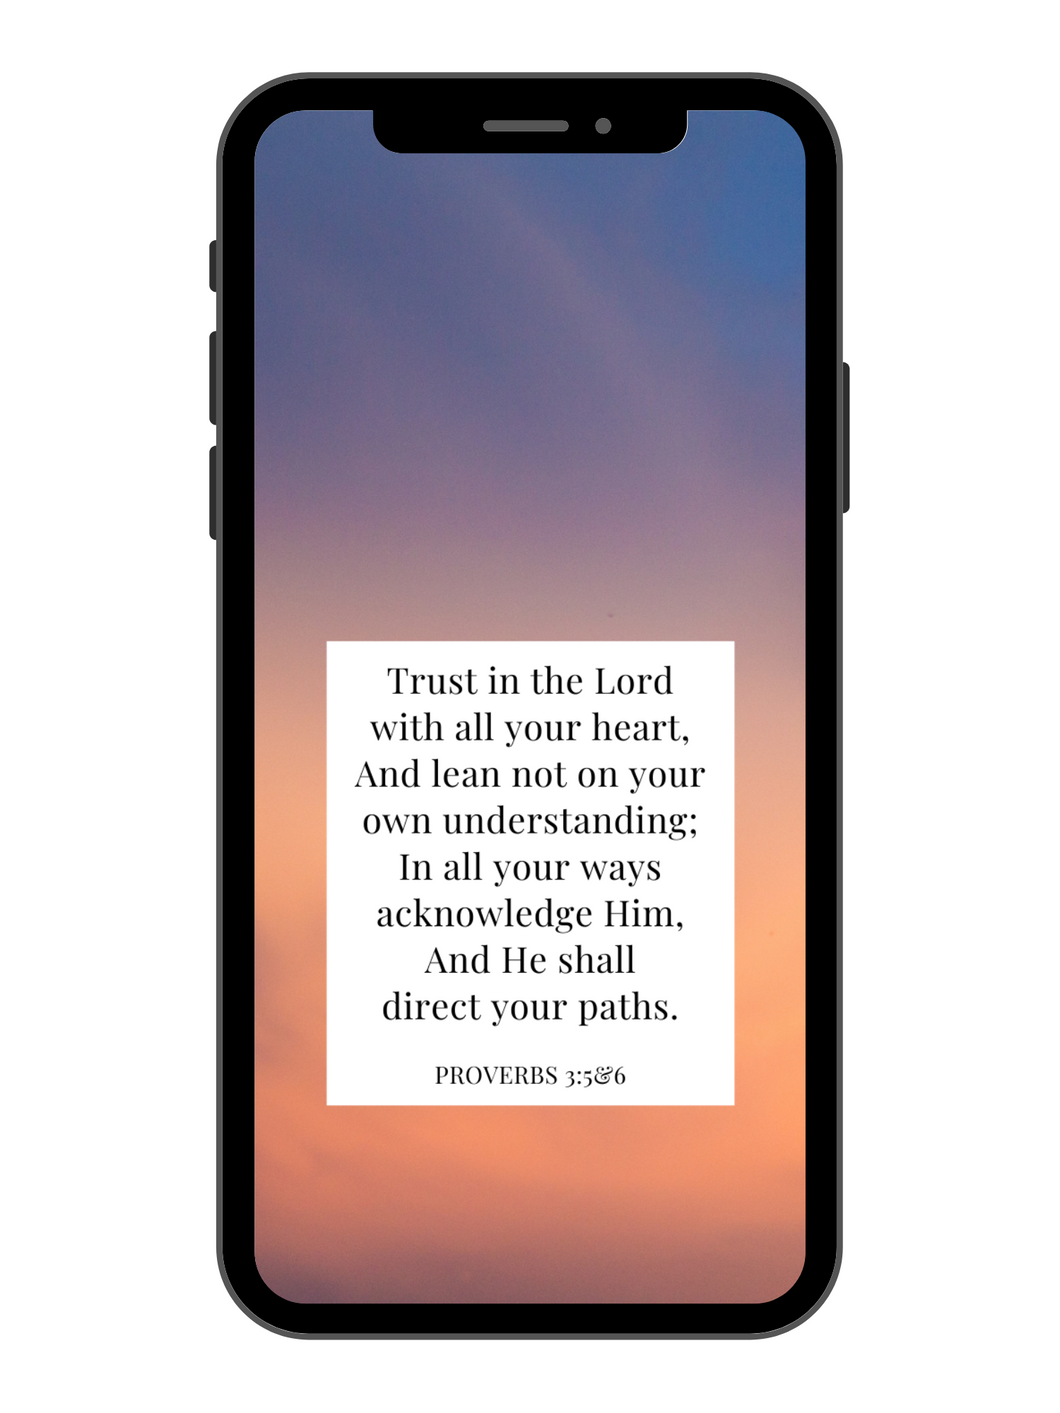 iPhone Wallpaper - Proverbs 3:5&6 - Dusk